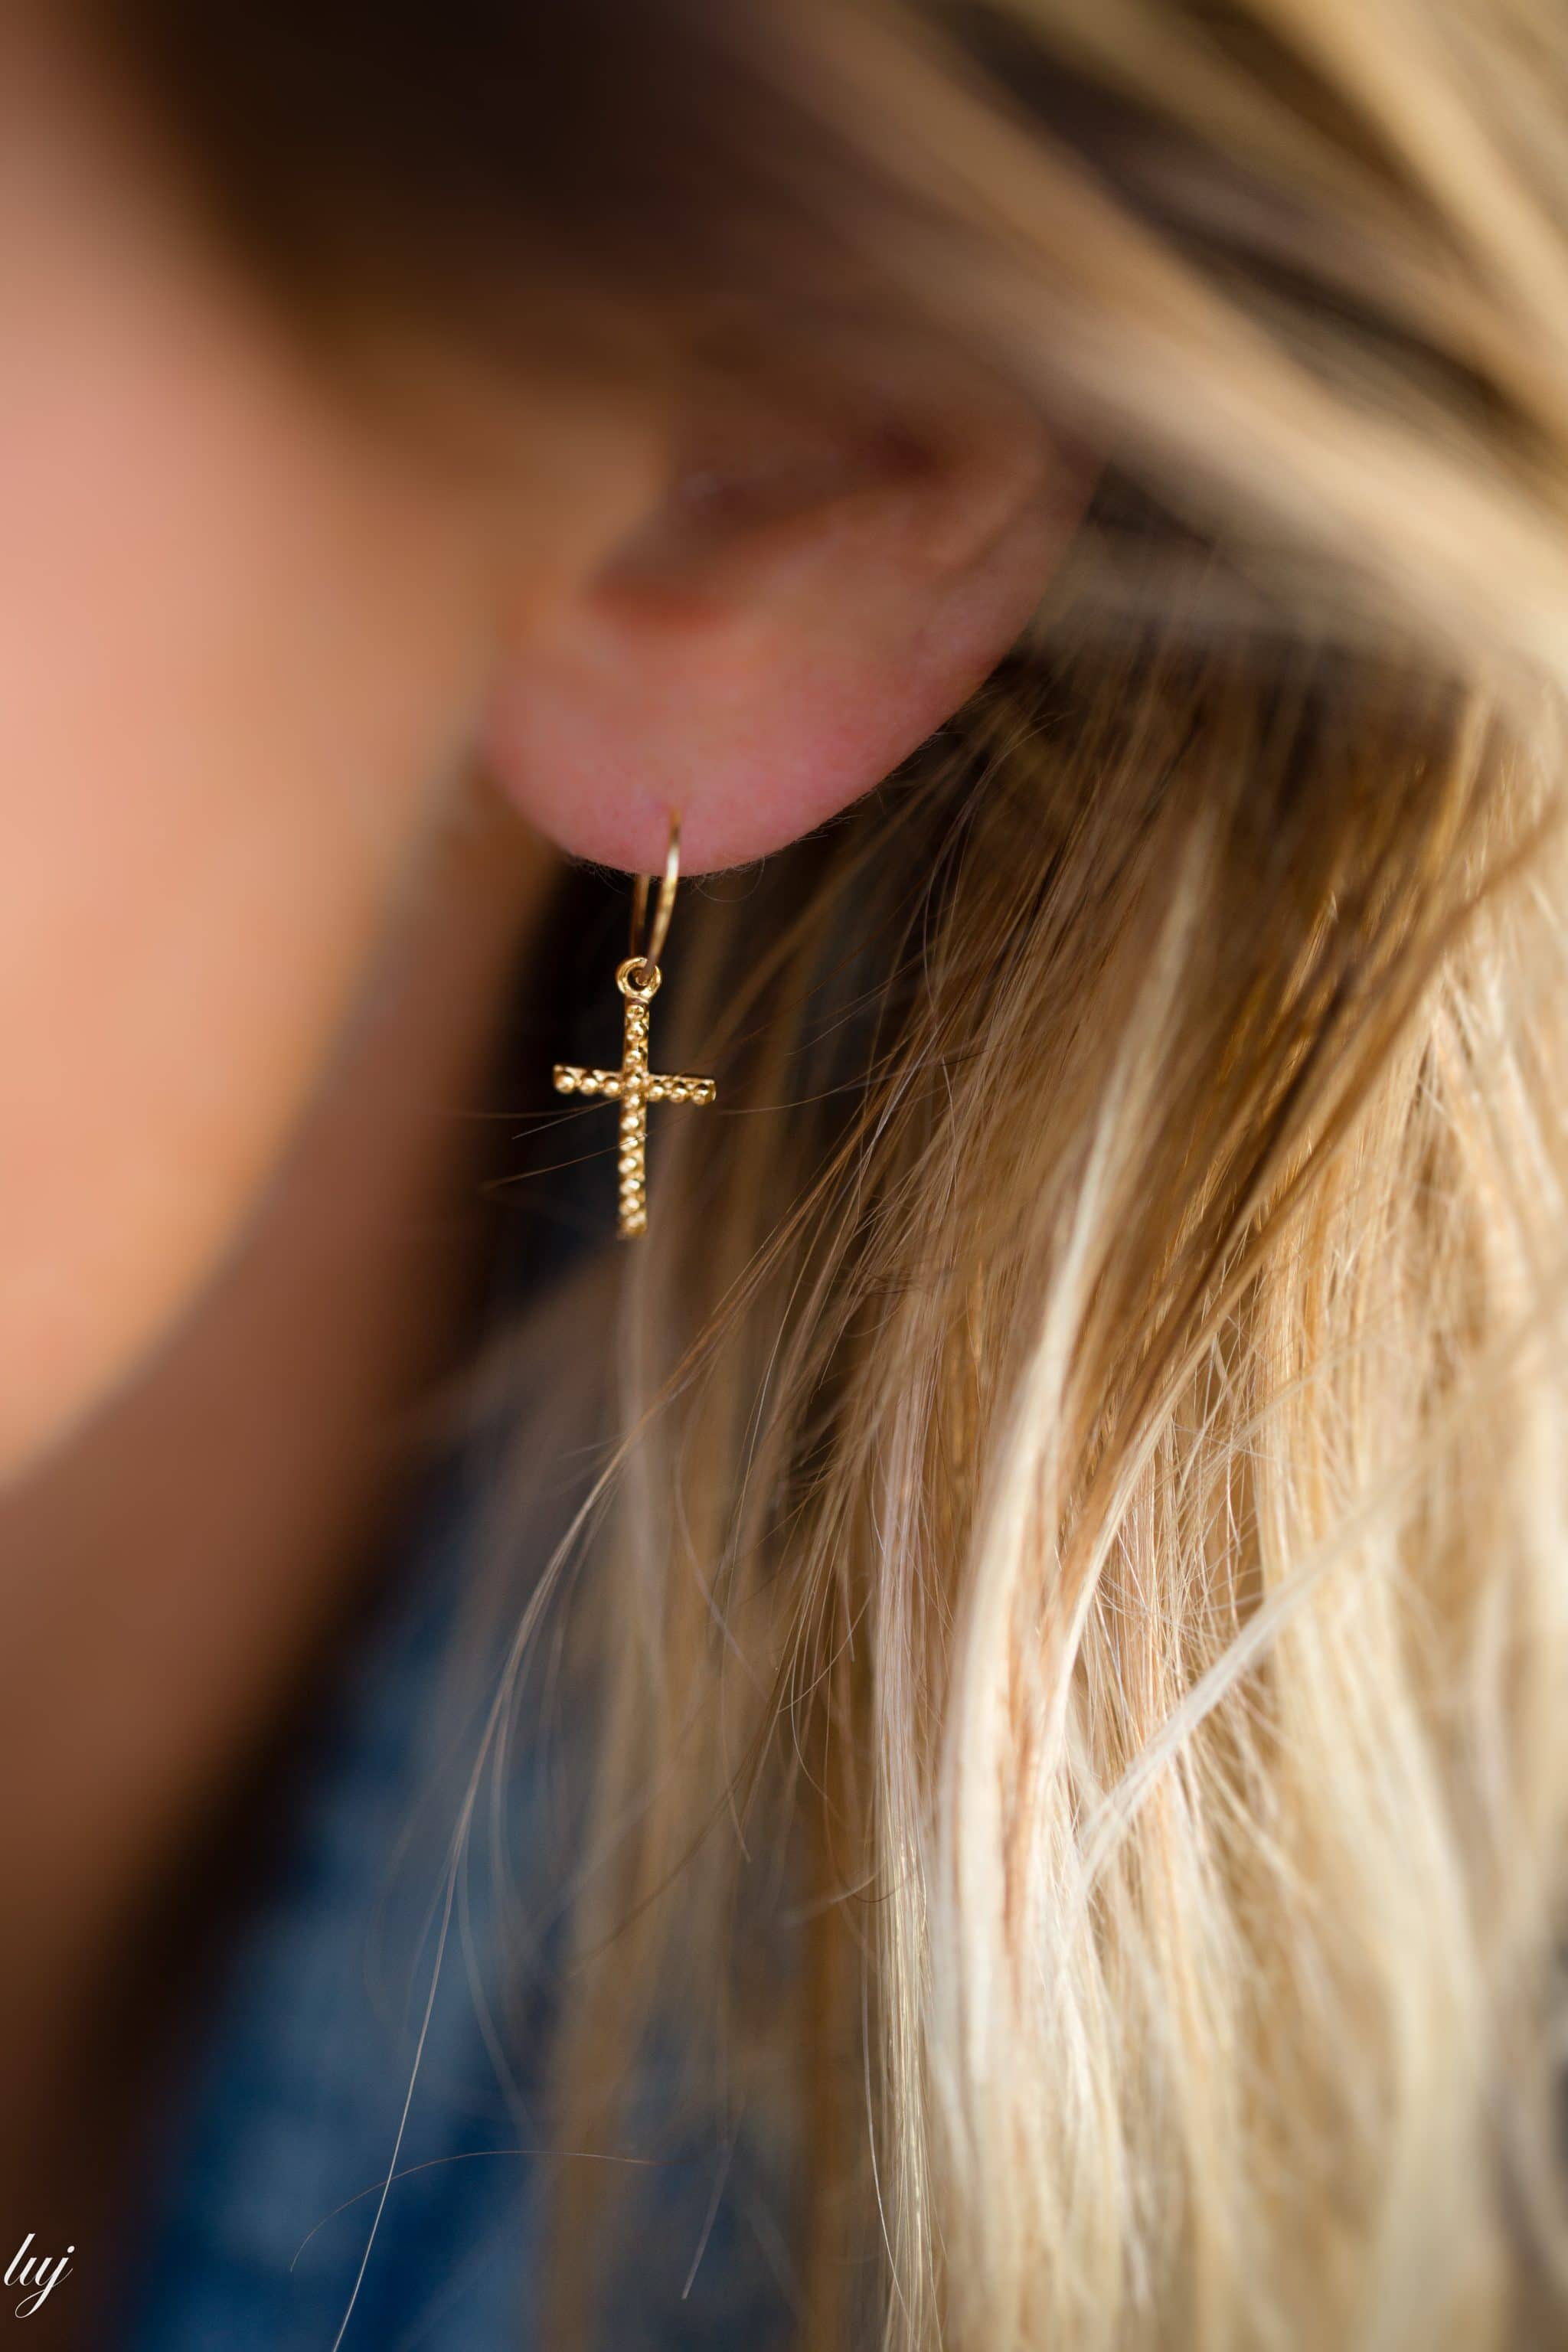 tiny-hoop-earrings-thin-crosses-2